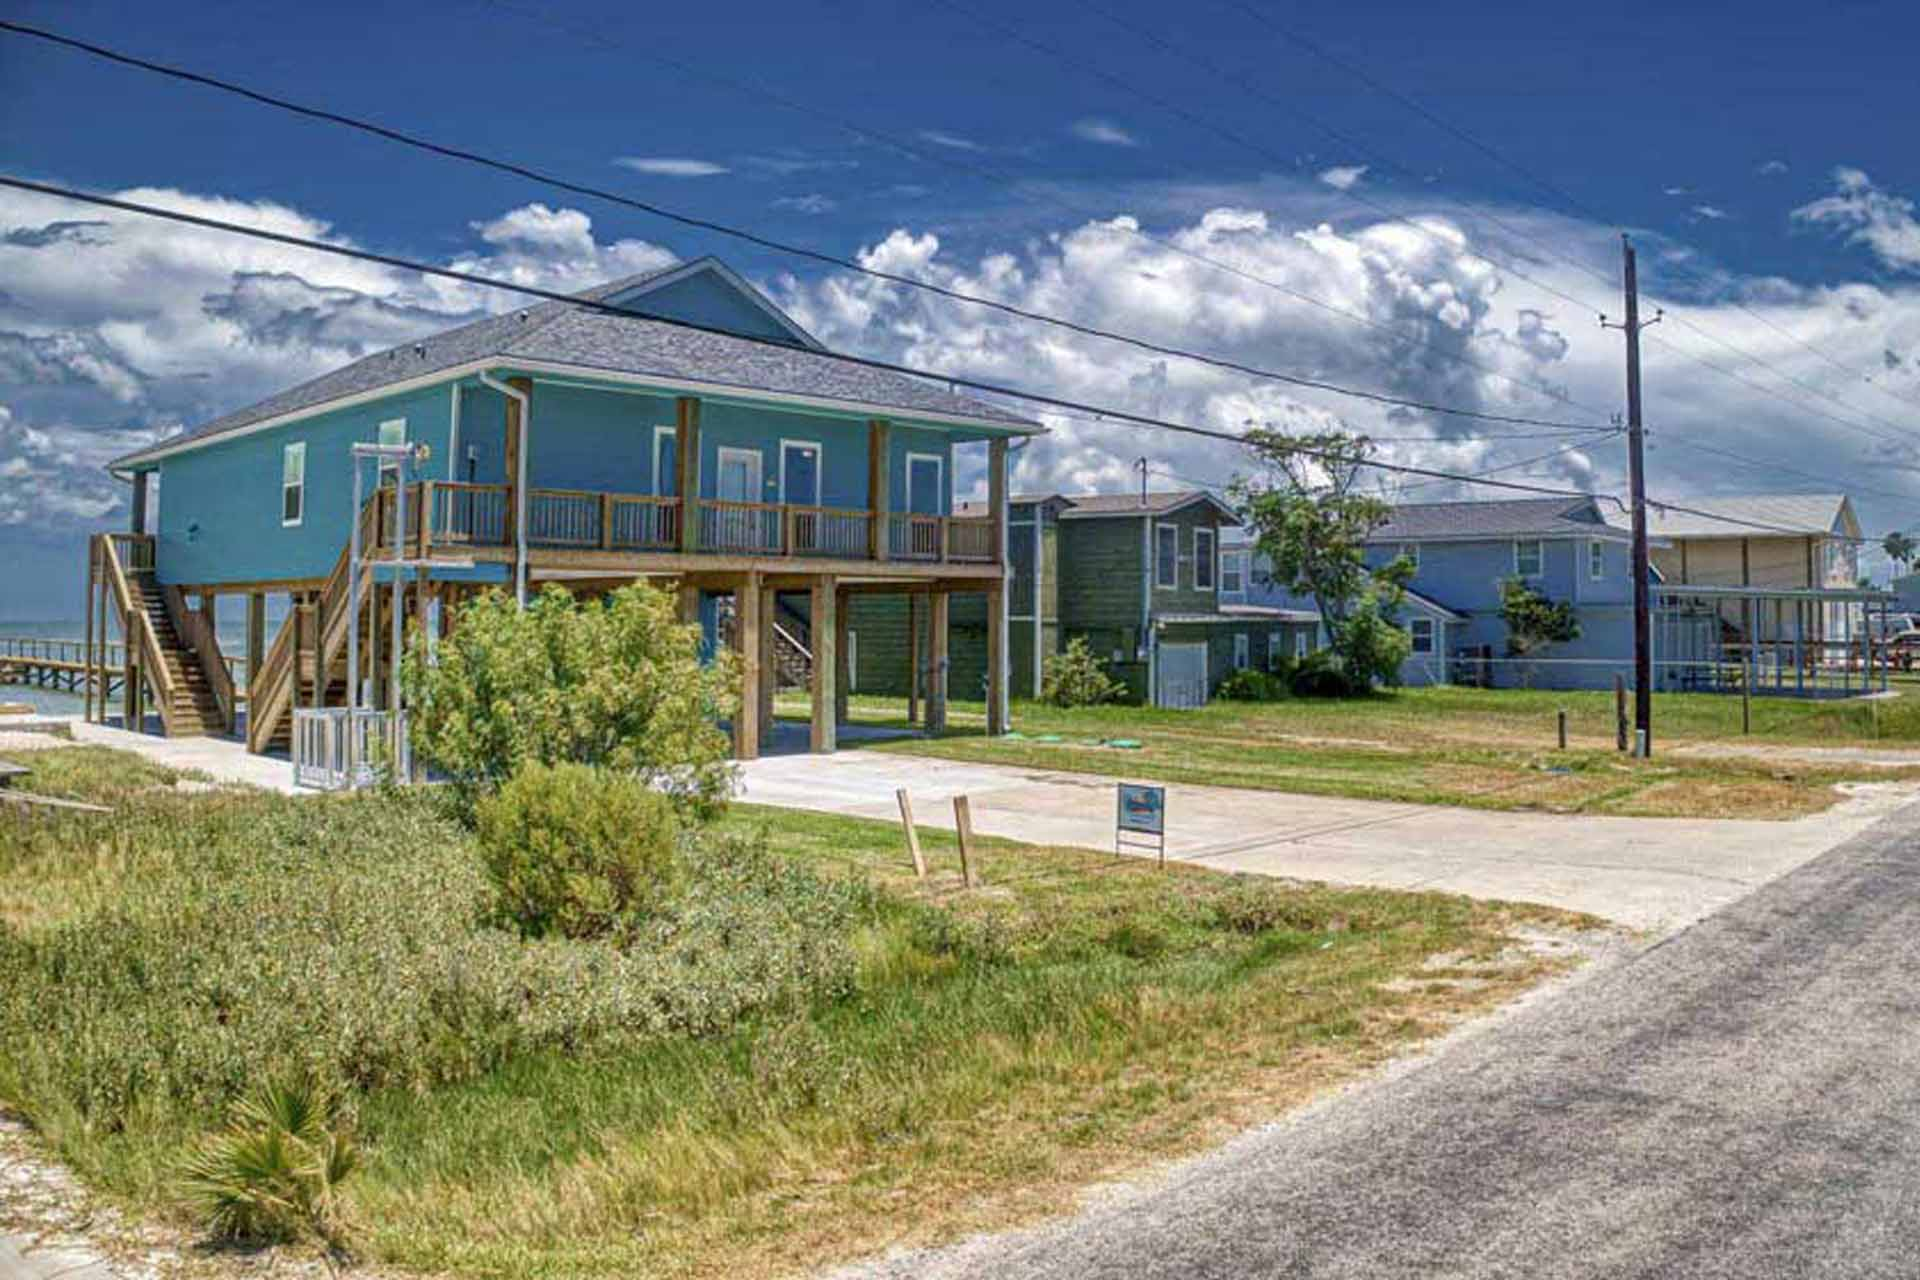 The Importance of Vacation: Rockport, Texas